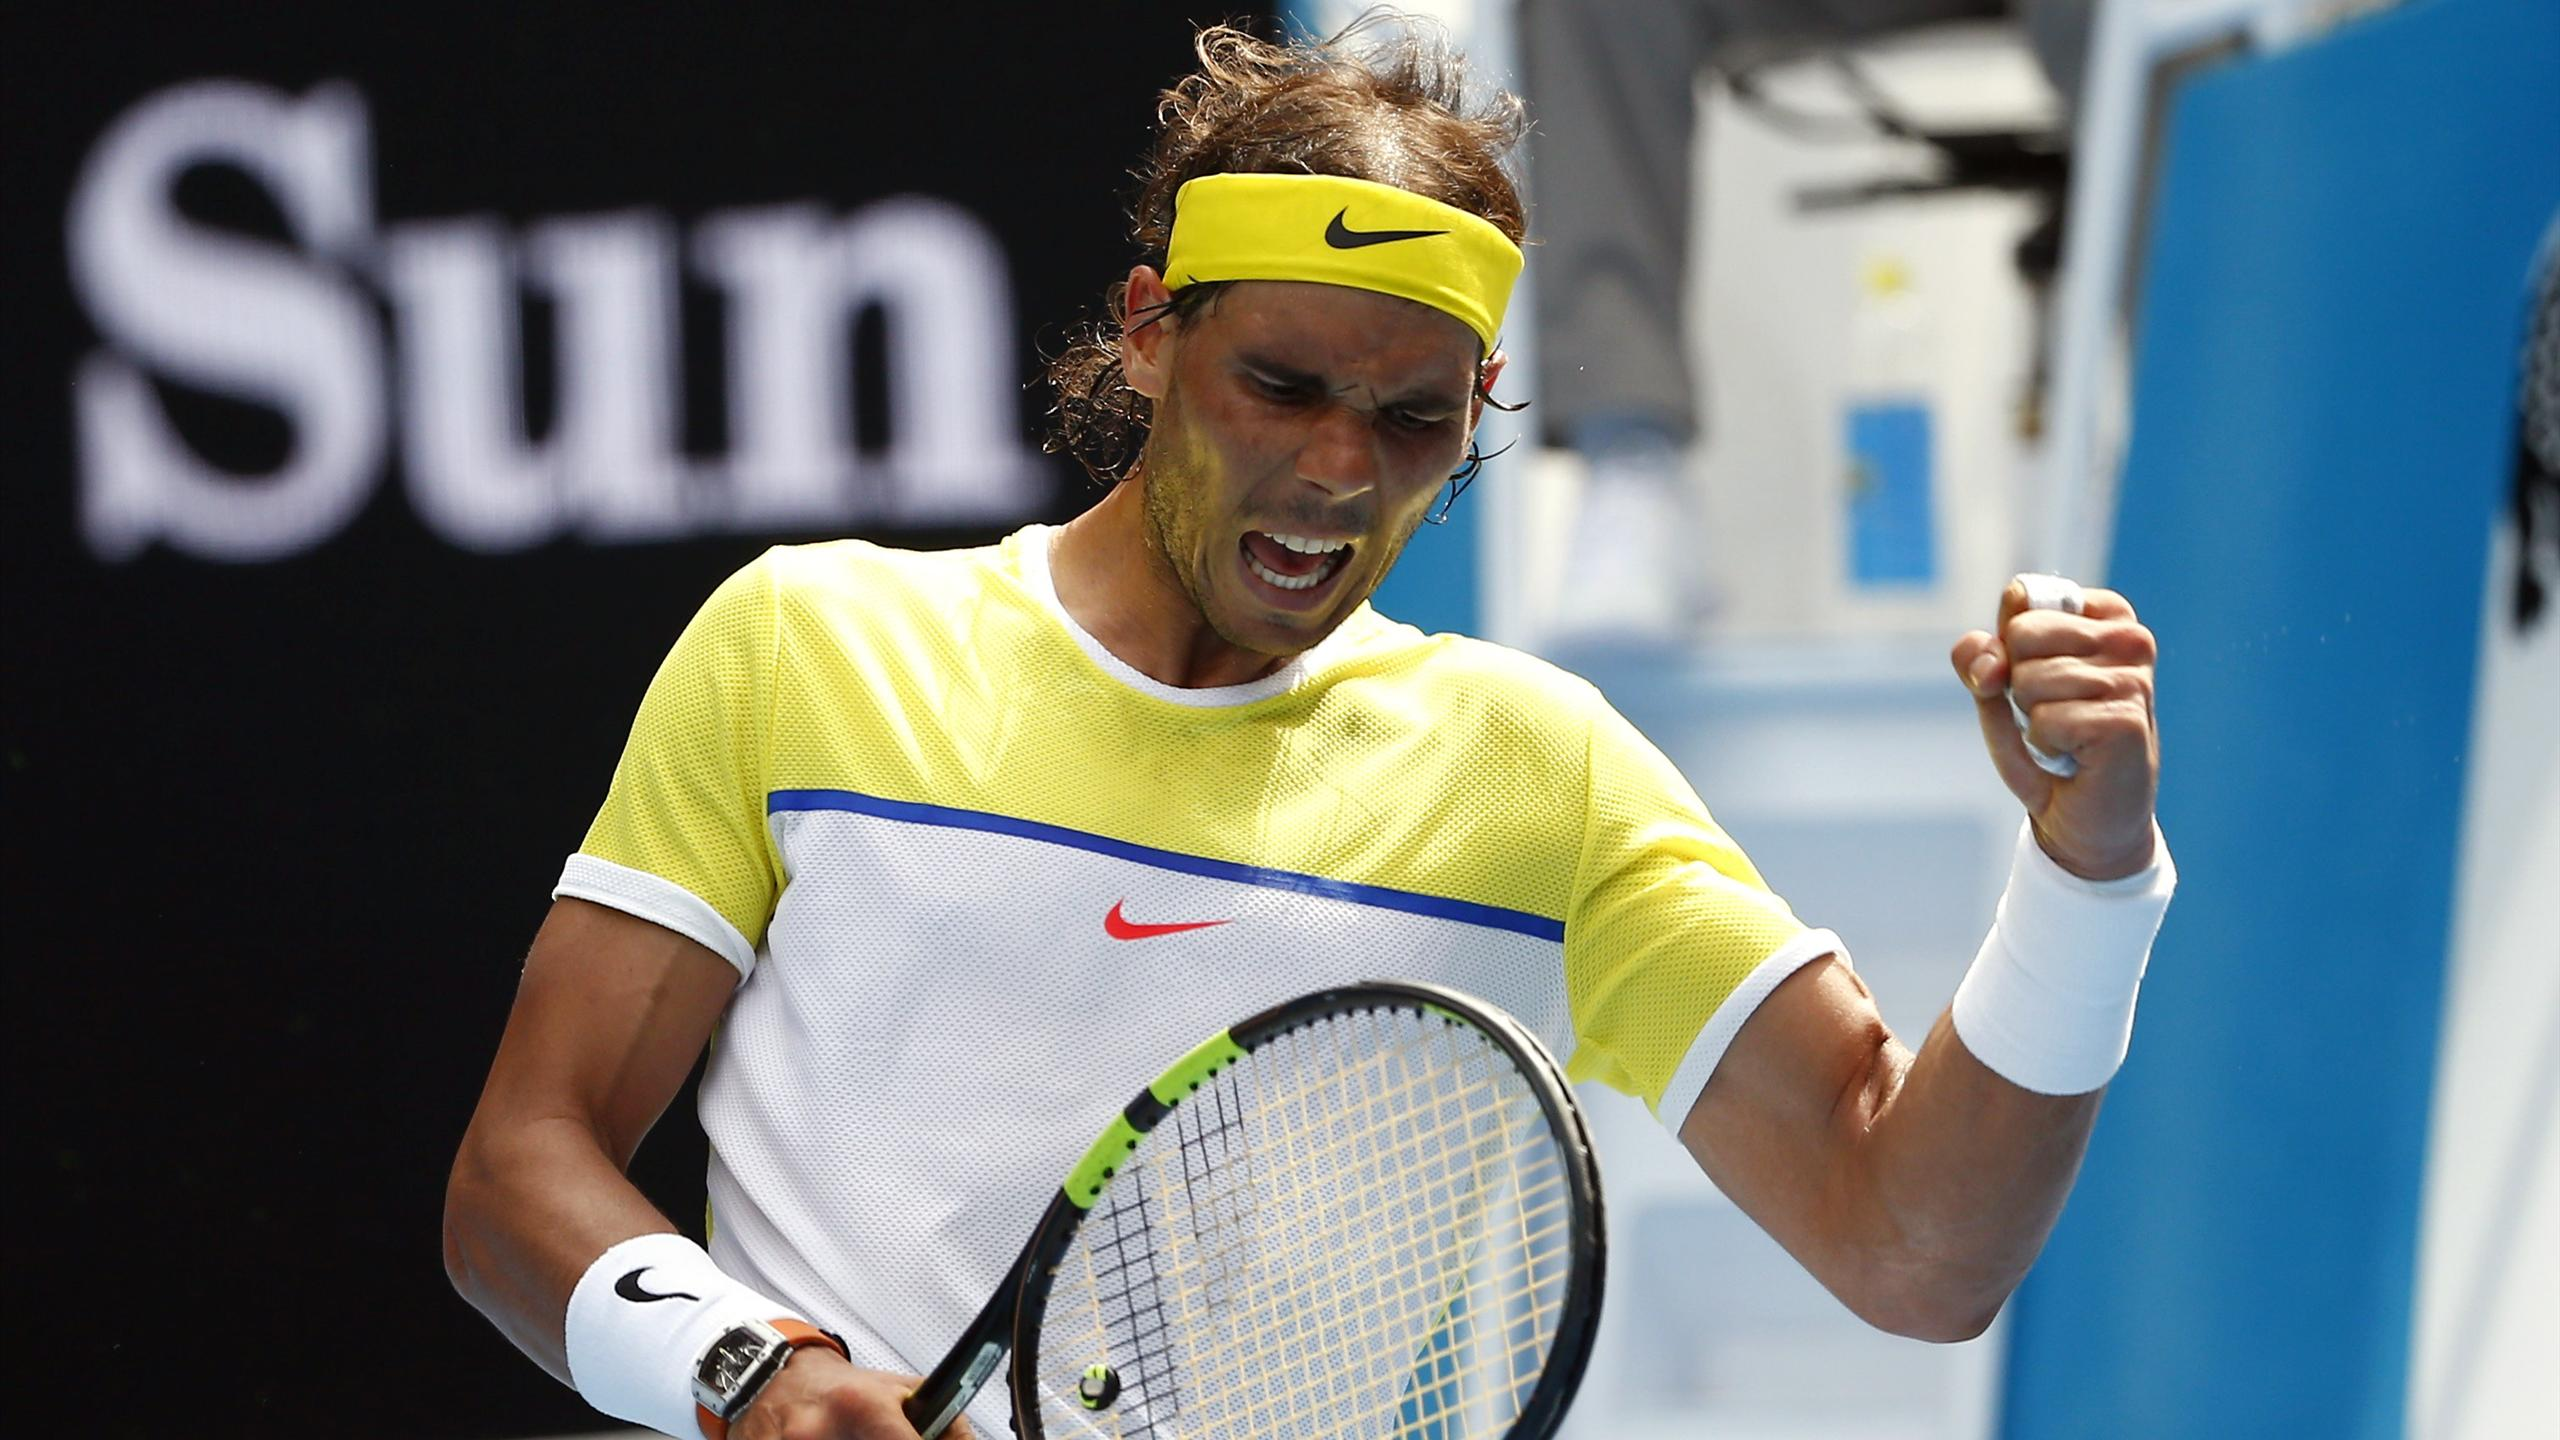 Spain's Rafael Nadal reacts during his first round match against Spain's Fernando Verdasco at the Australian Open tennis tournament at Melbourne Park